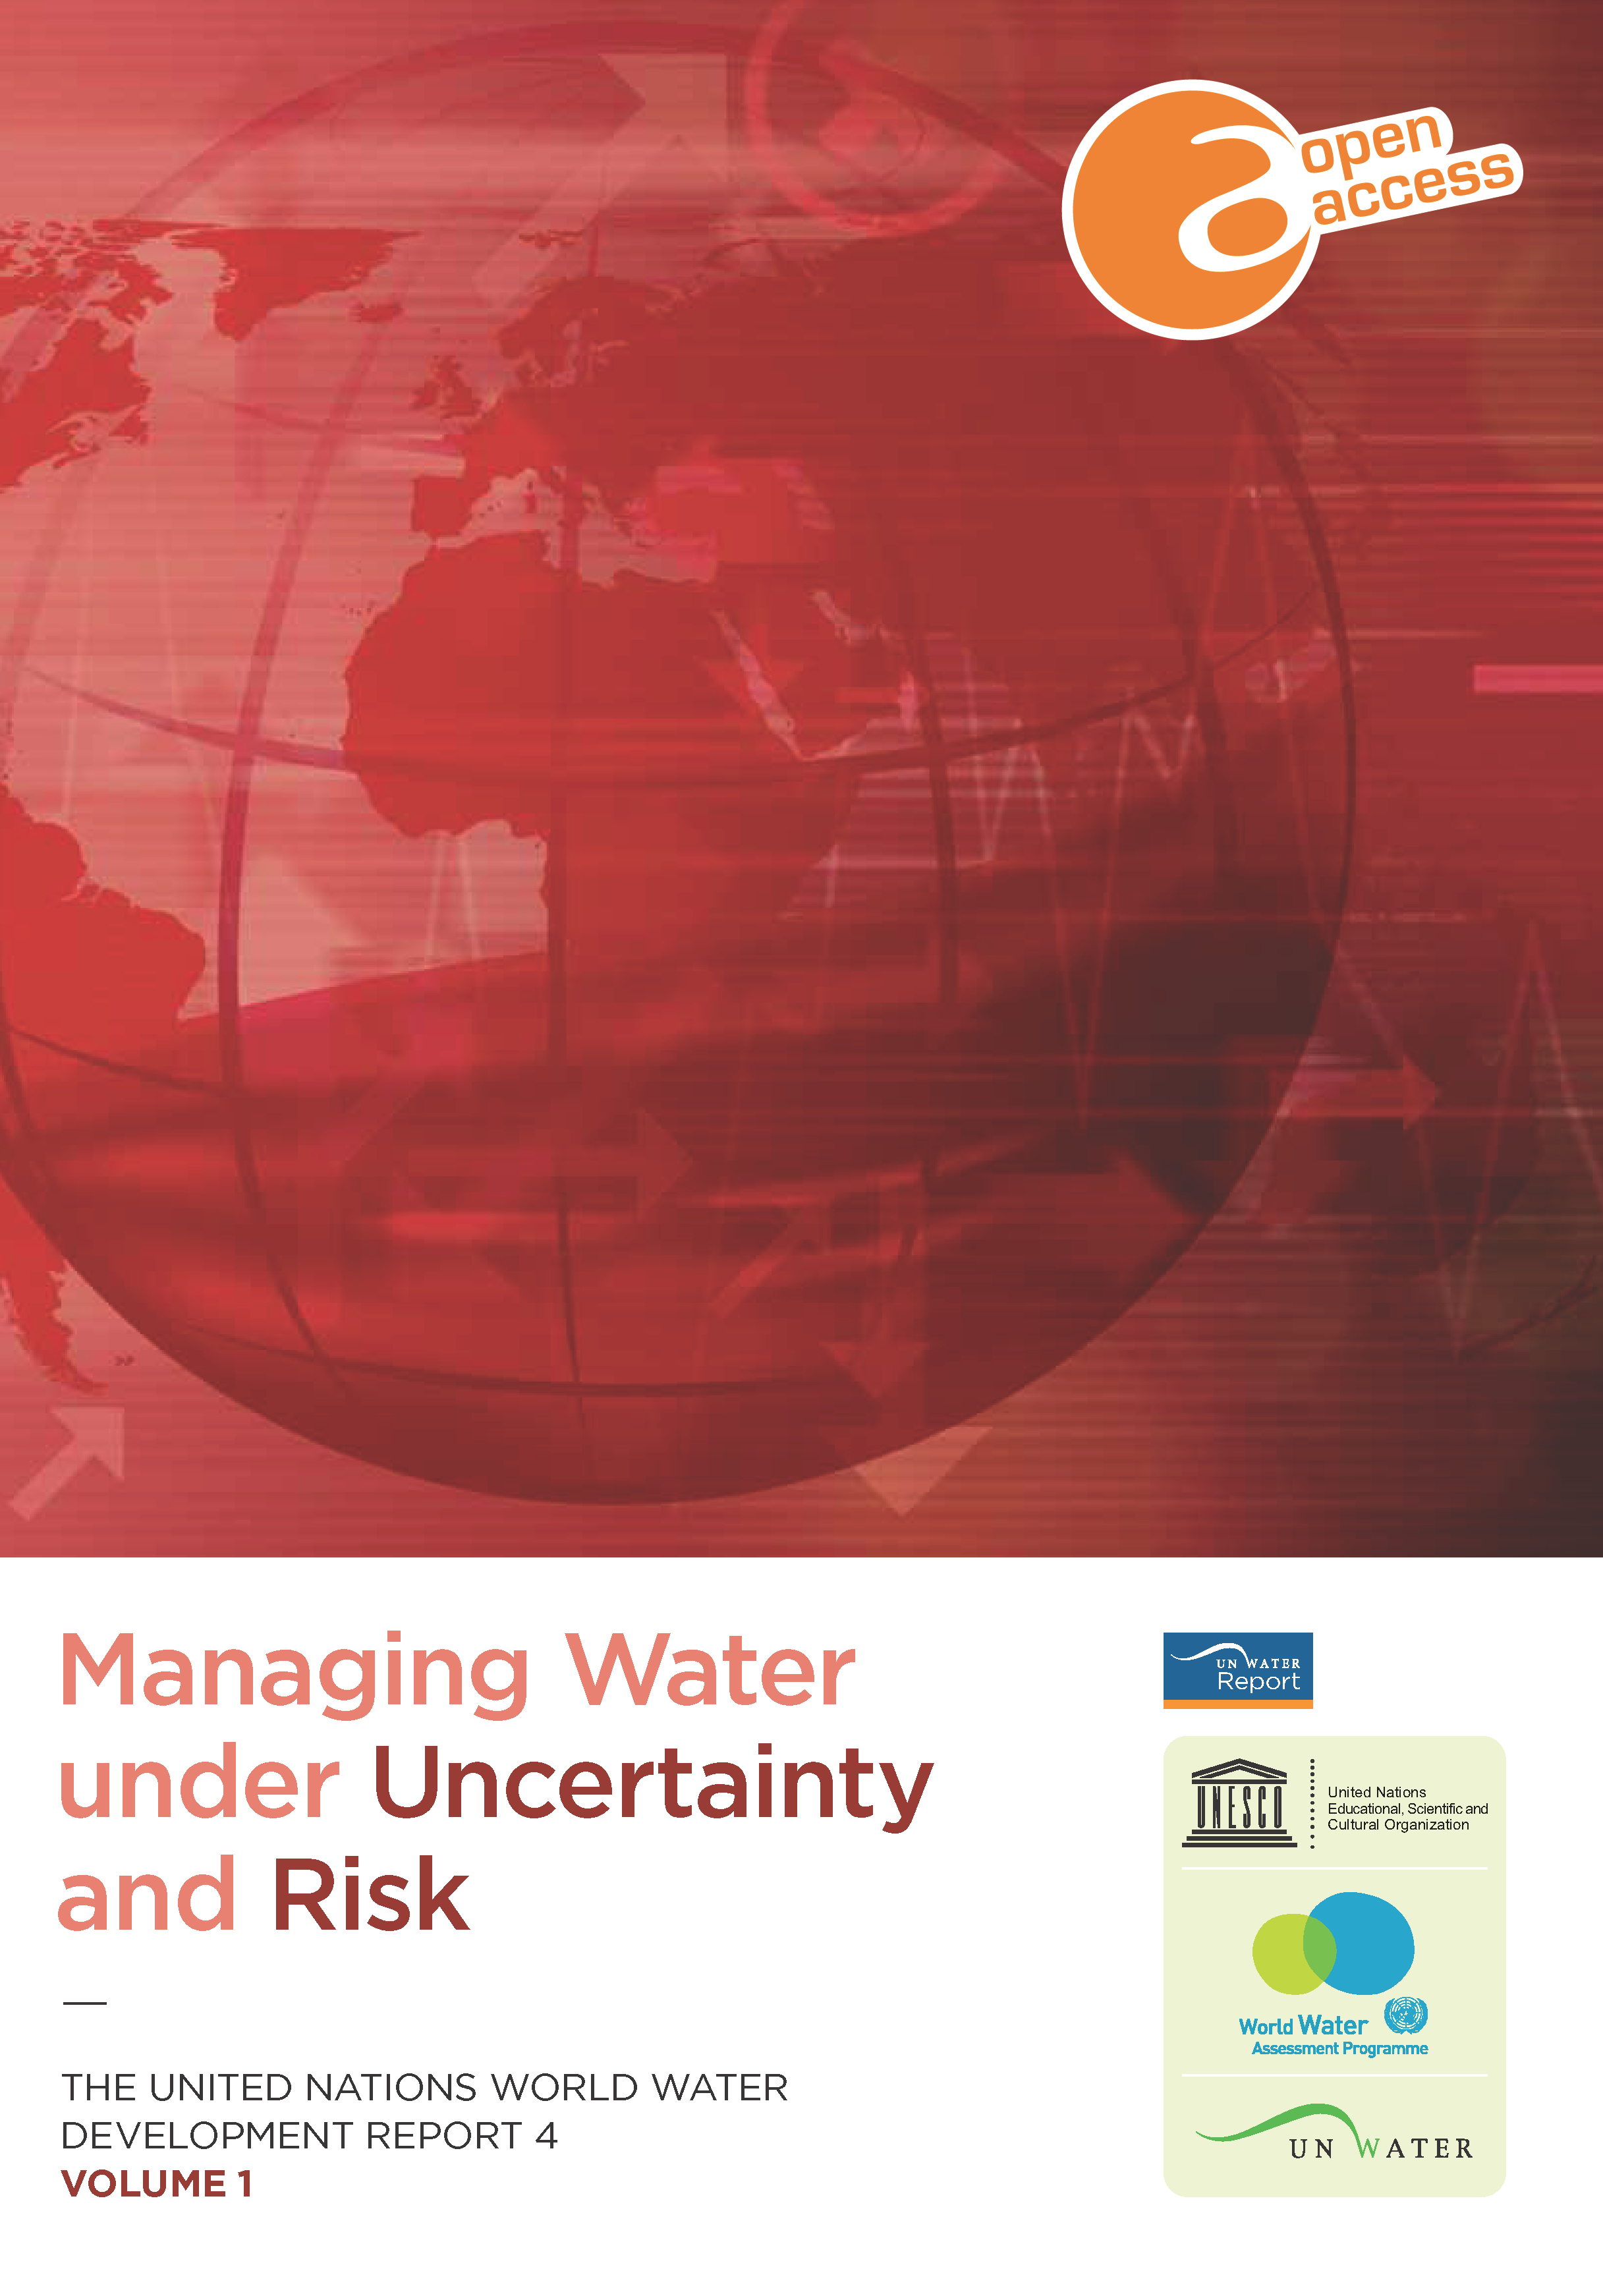 Capa da The United Nations World Water Development Report 4 - Volume 1 - Managing Water under Uncertainty and Risk